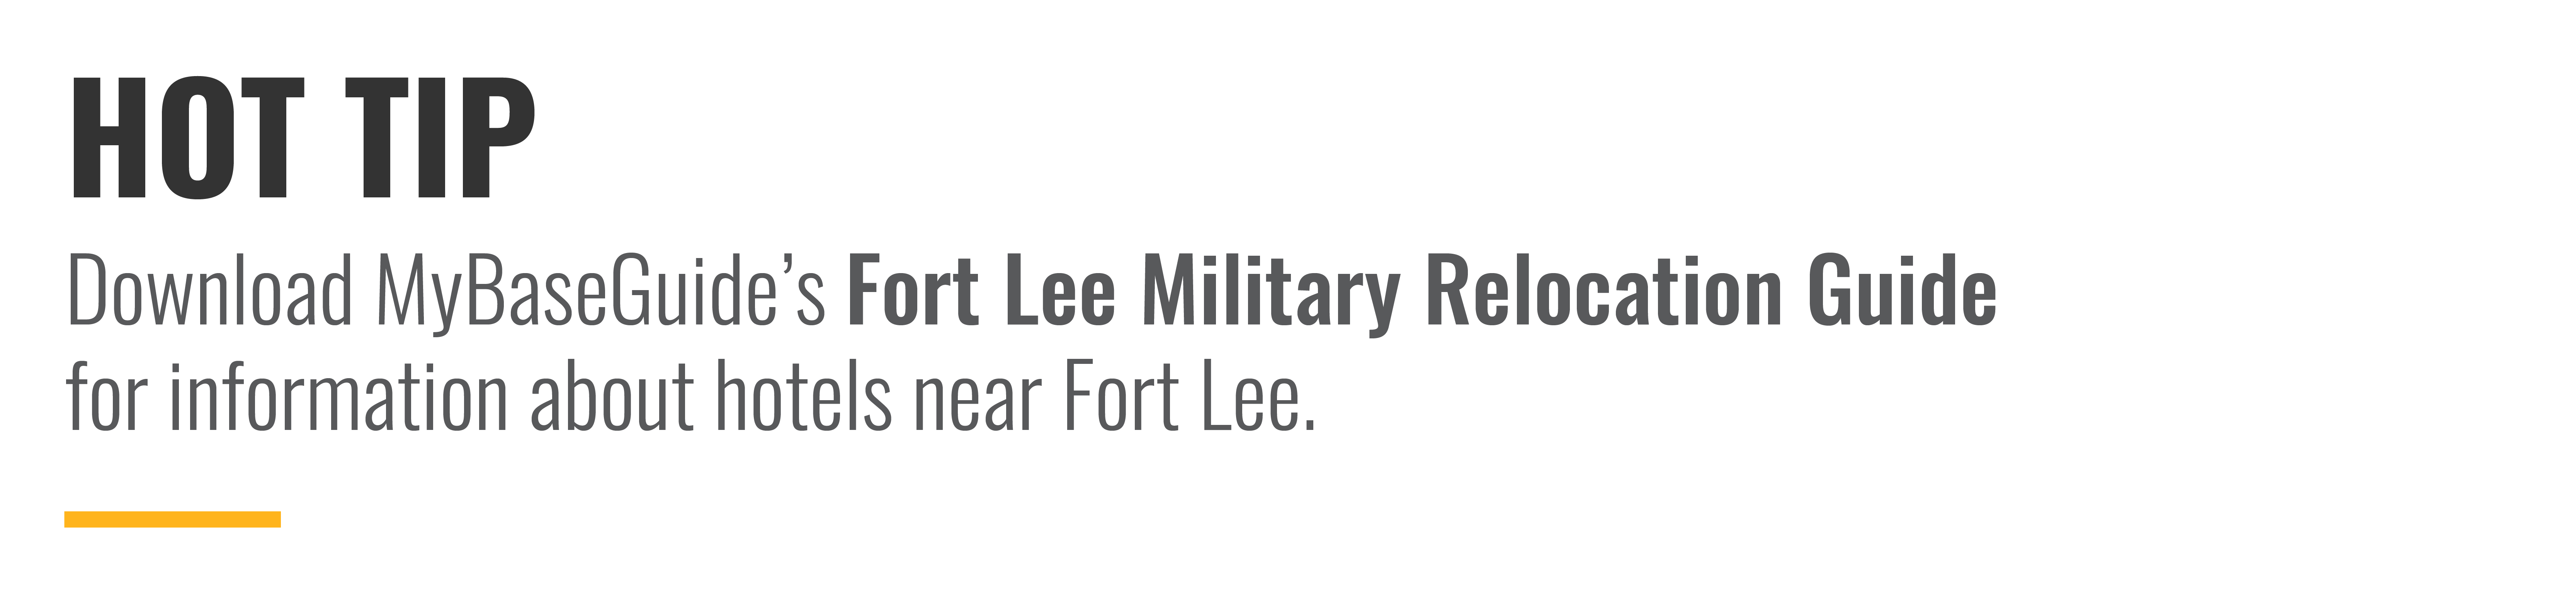 Download MyBaseGuide's Fort Lee Military Relocation Guide